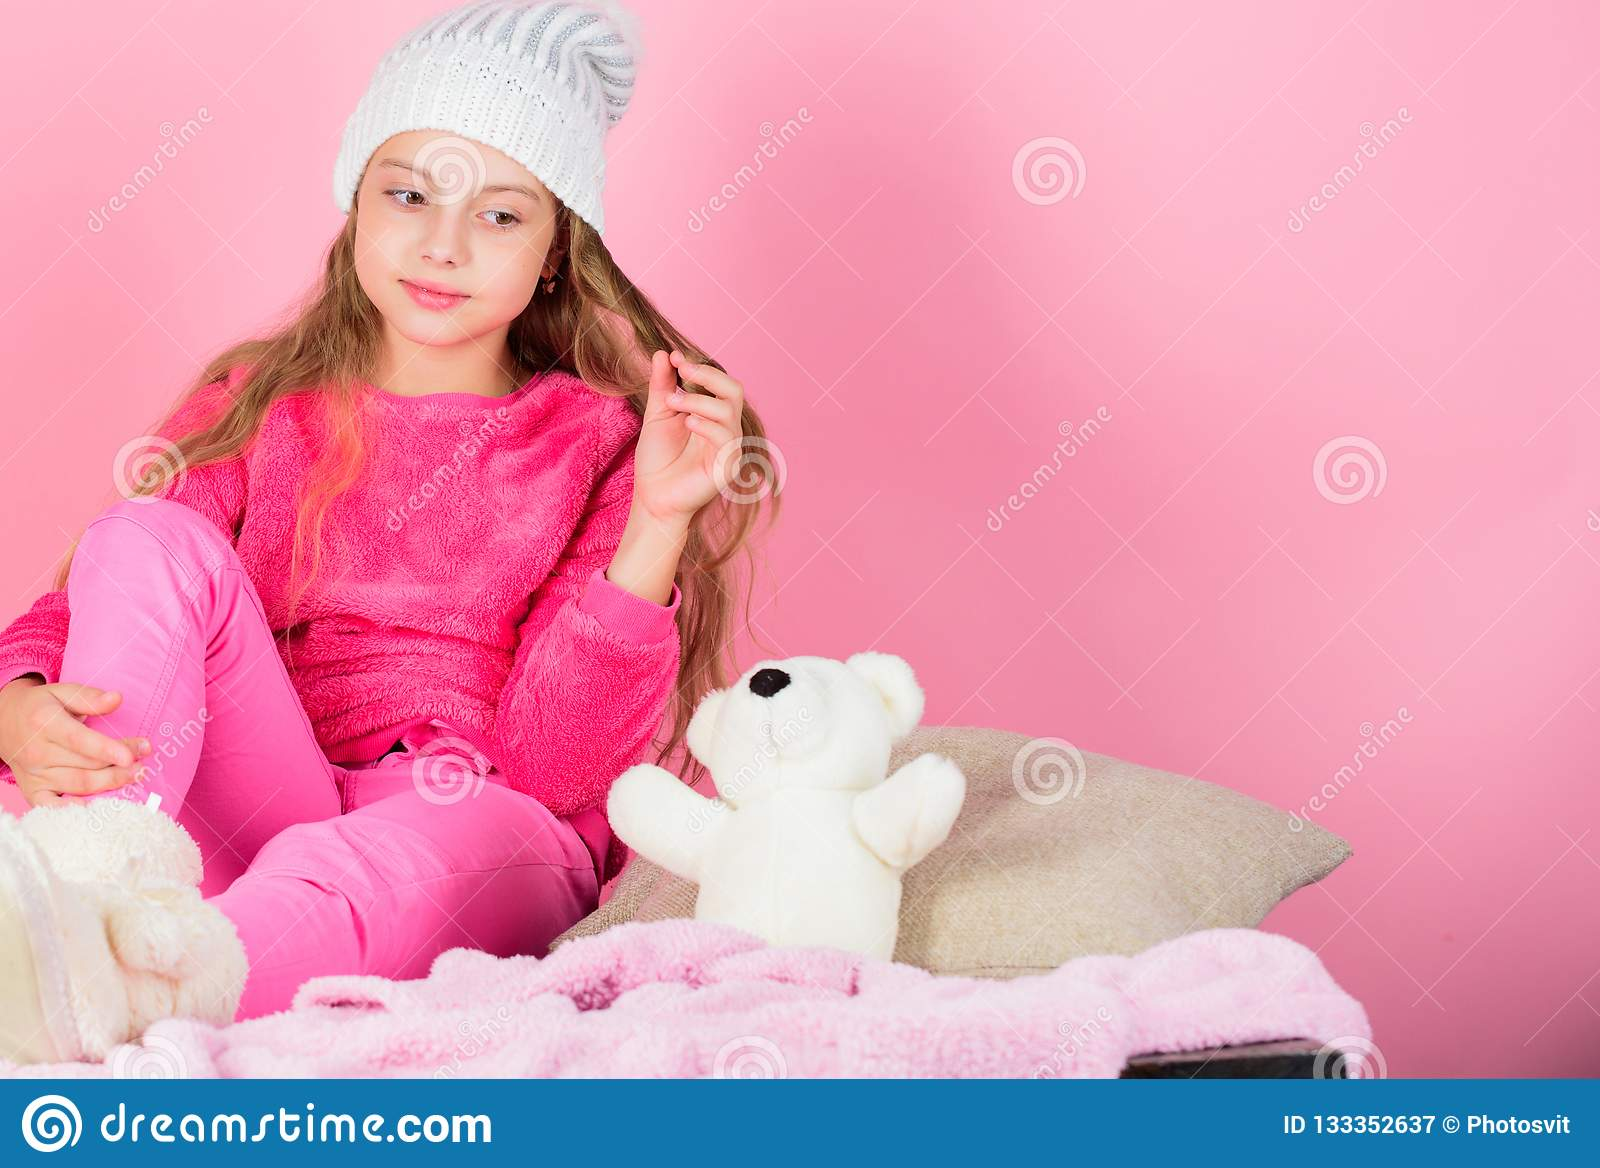 Kid cute girl play with soft toy teddy bear pink background. Unique attachments to stuffed animals. Child small girl